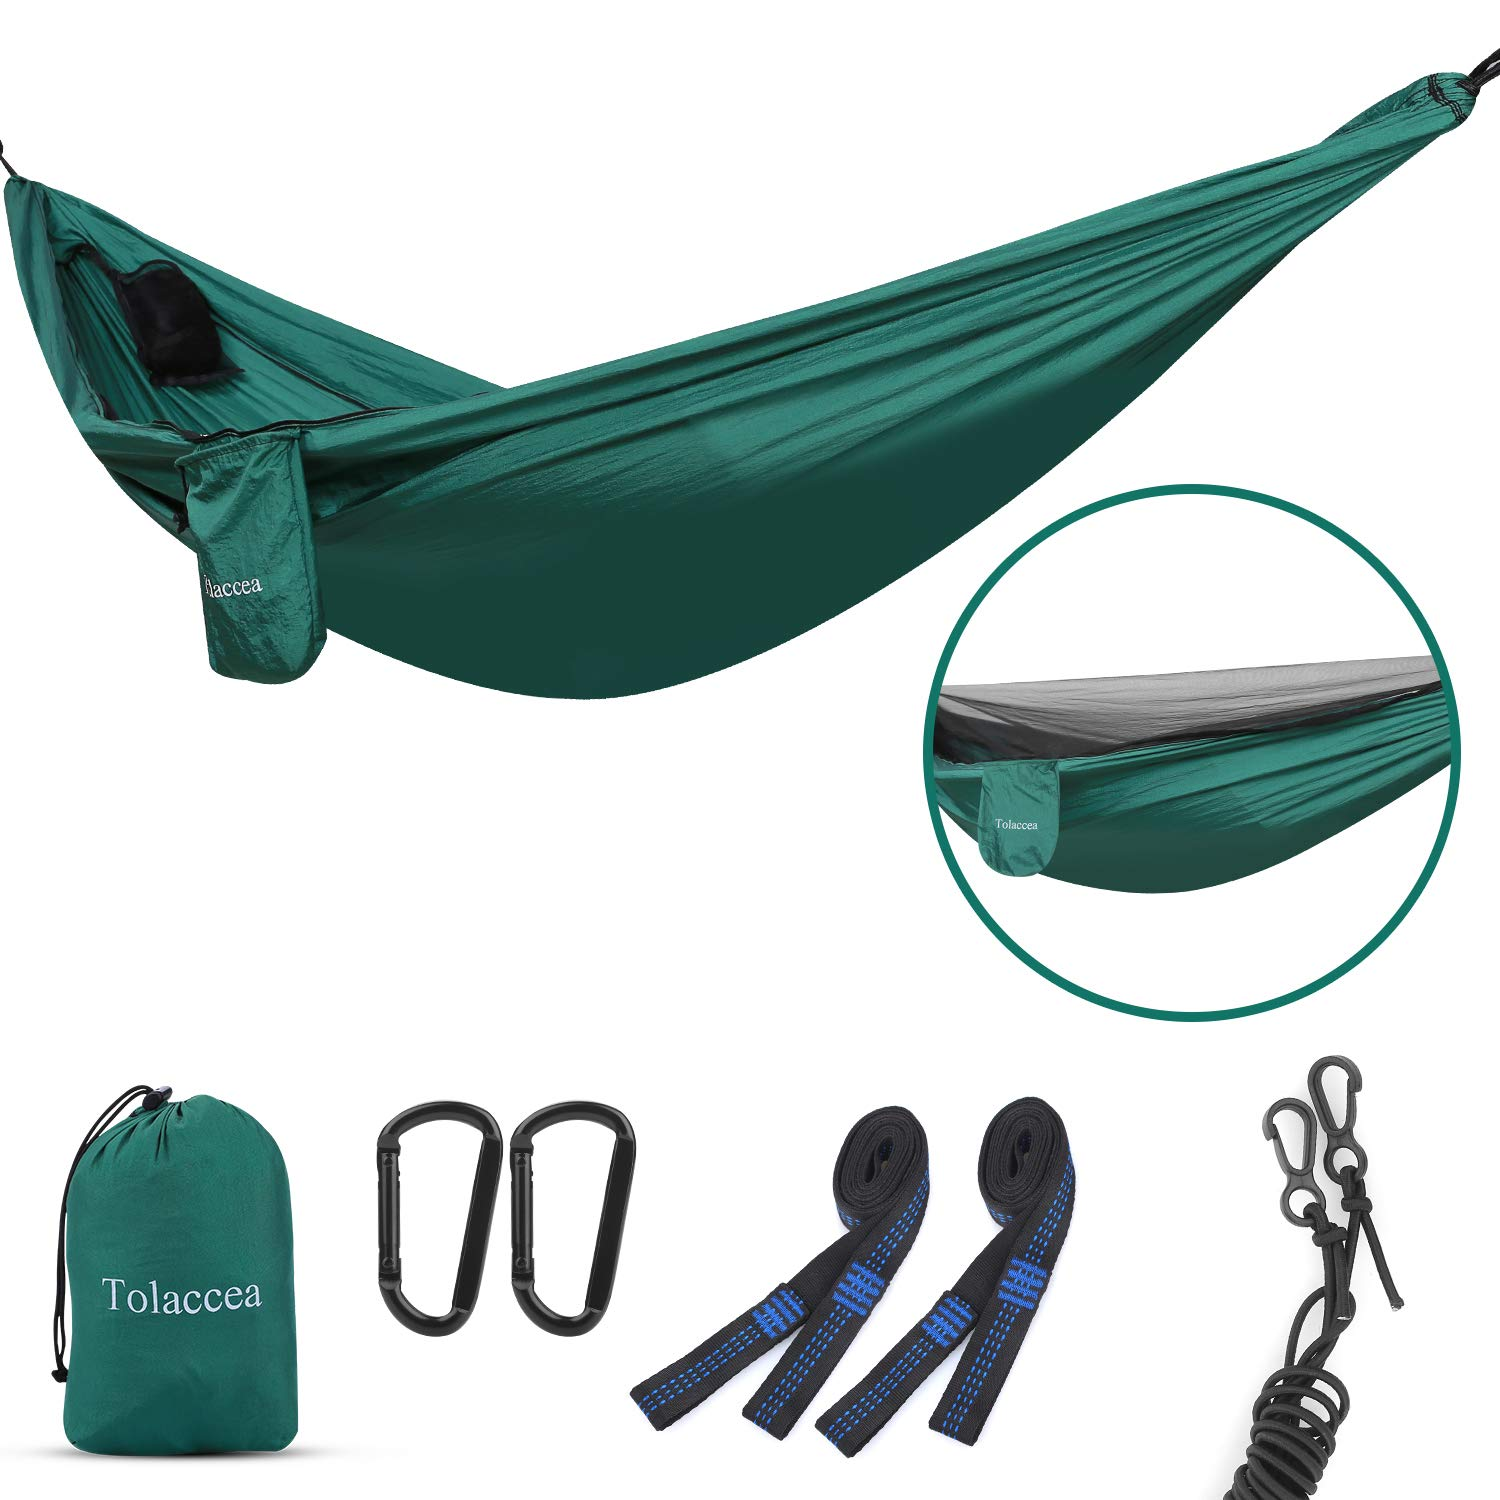 Camping Hammock with Self-Supporting Mosquito Net